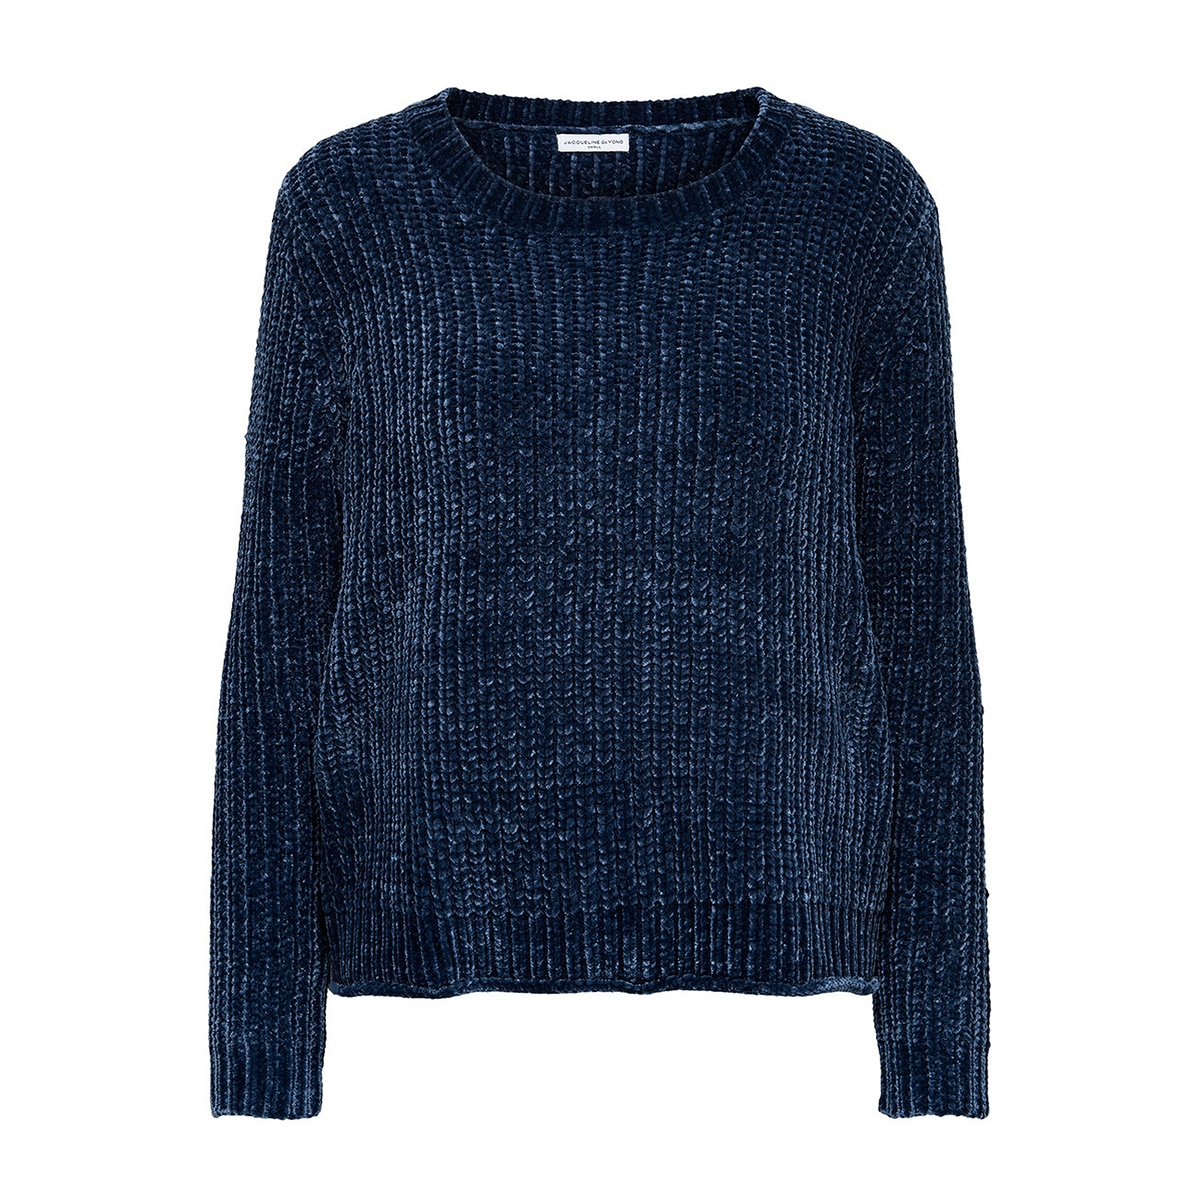 jdymine l/s cropped pullover knt 15140927 jacqueline de yong trui dress blues